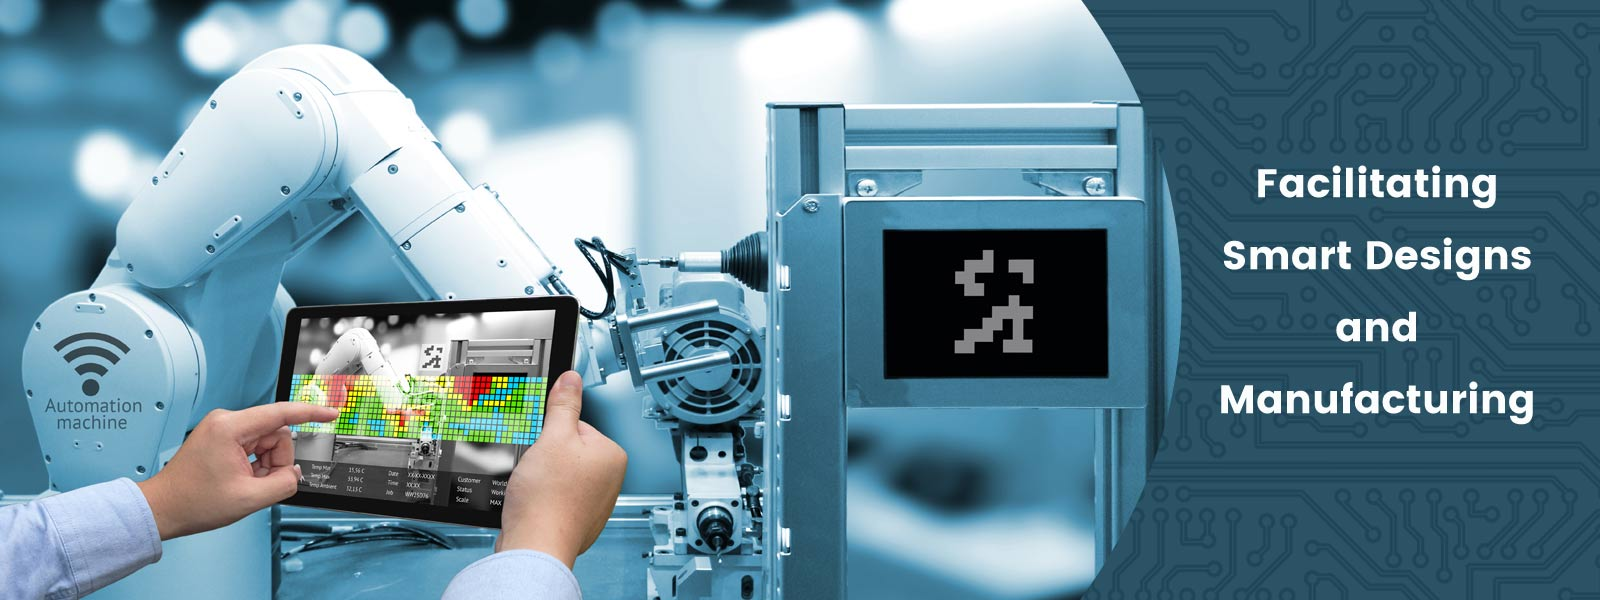 Facilitating smart designs and manufacturing using engineering software